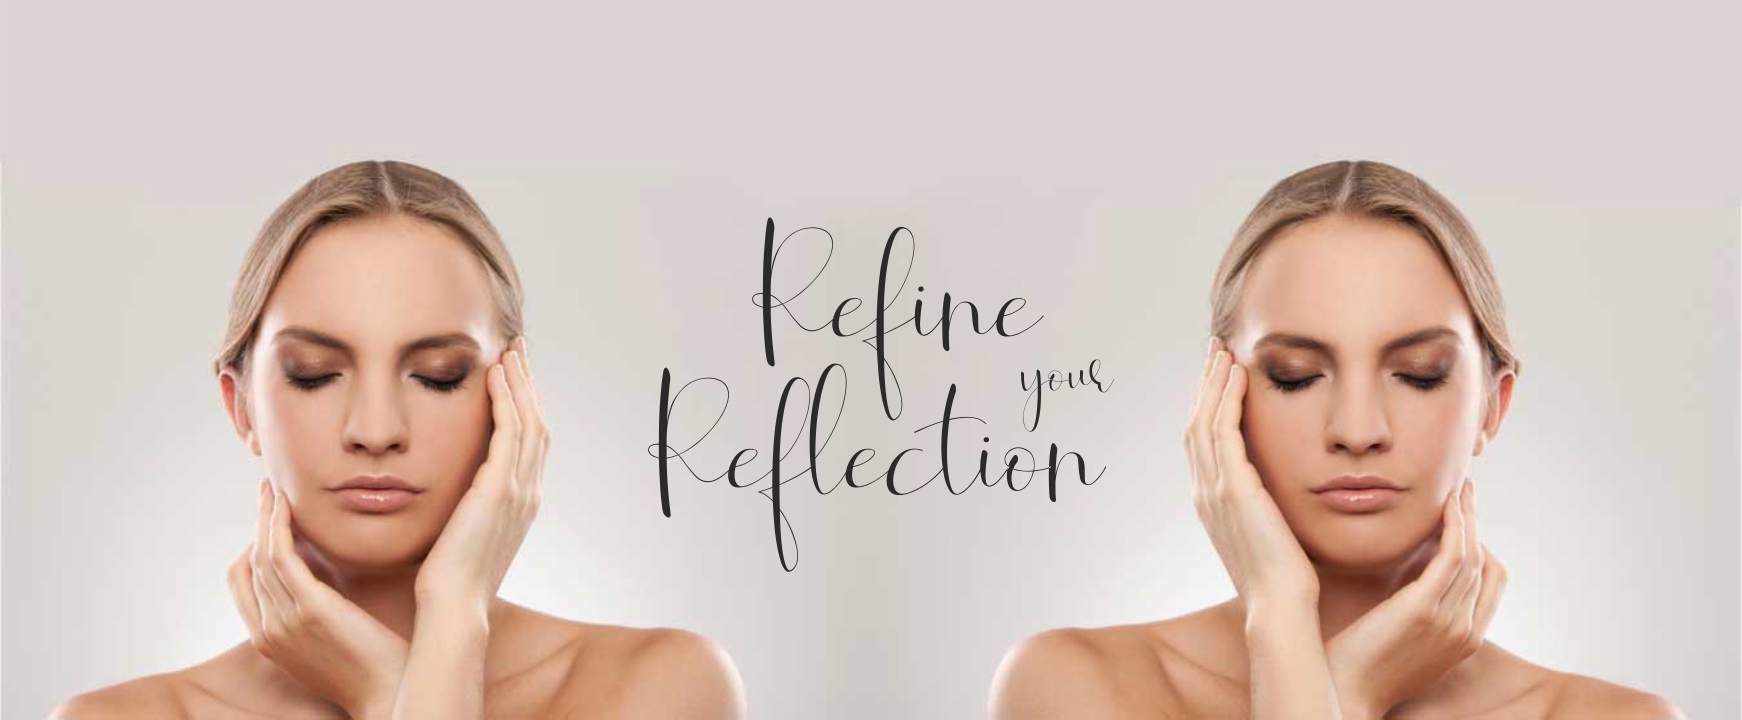 Refine your Reflection